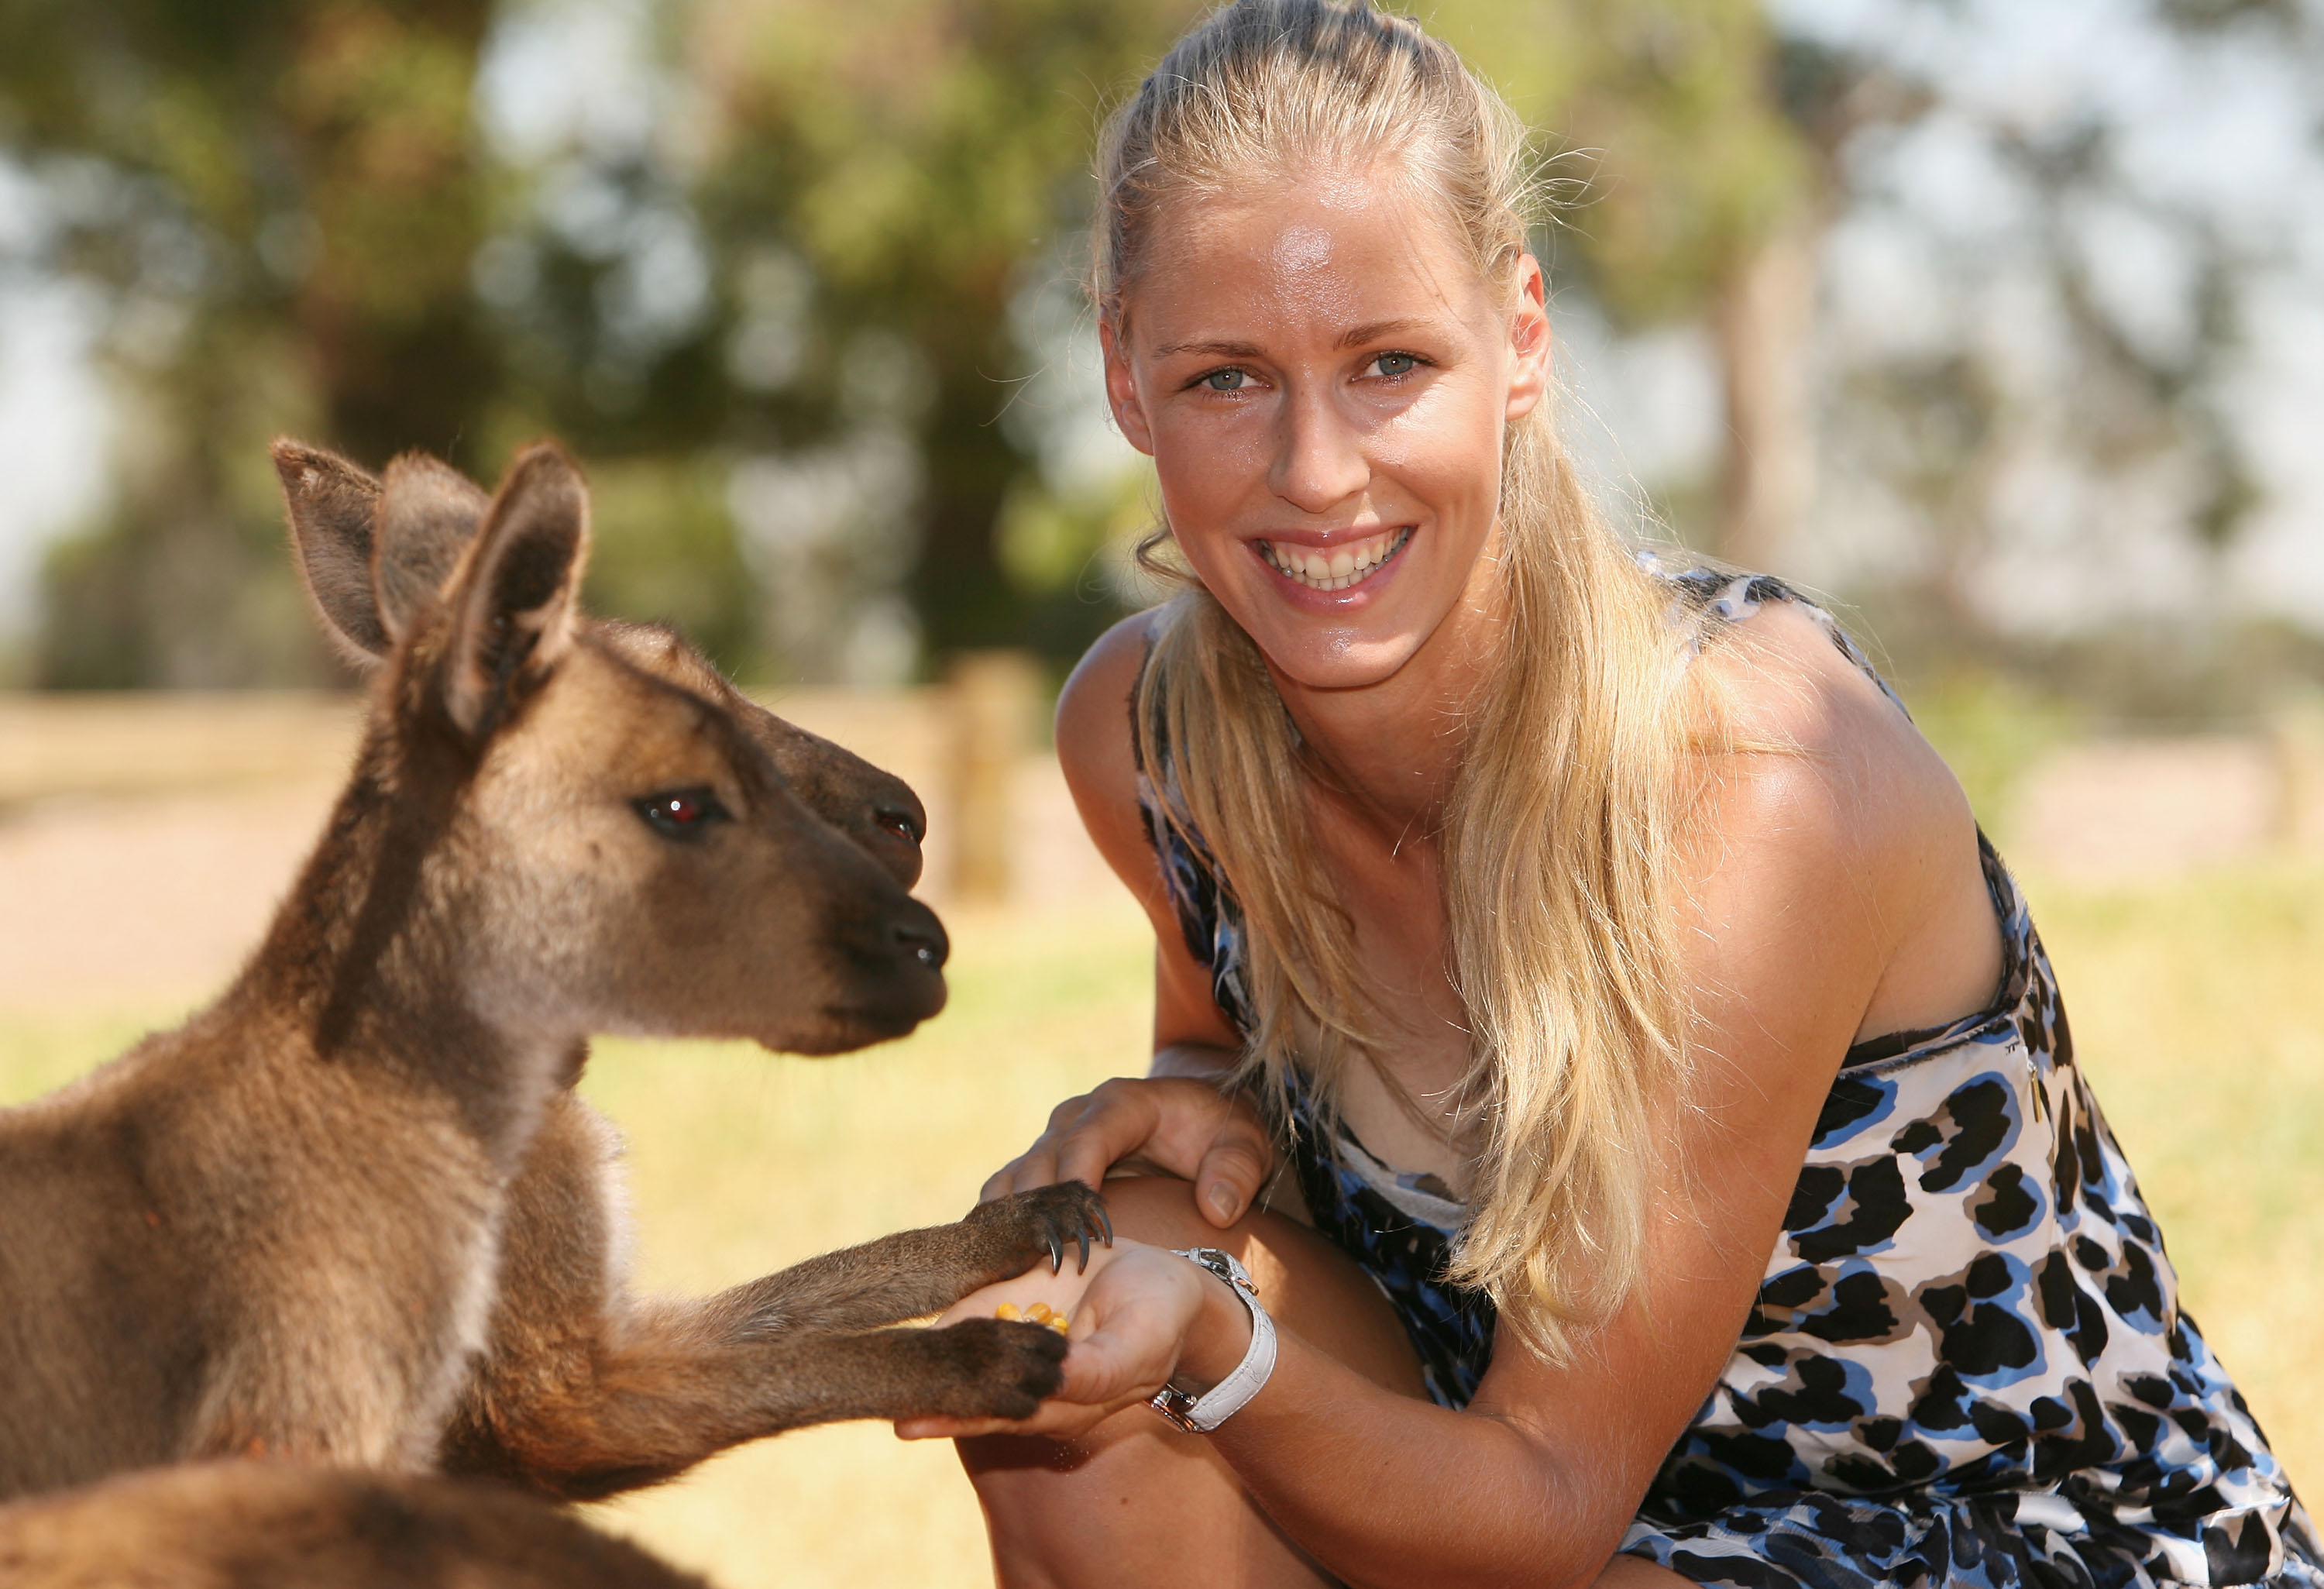 MELBOURNE, AUSTRALIA - JANUARY 27:  Elena Dementieva of Russia visits Melbourne Zoo during day nine of the 2009 Australian Open on January 27, 2009 in Melbourne, Australia.  (Photo by Robert Prezioso/Getty Images)